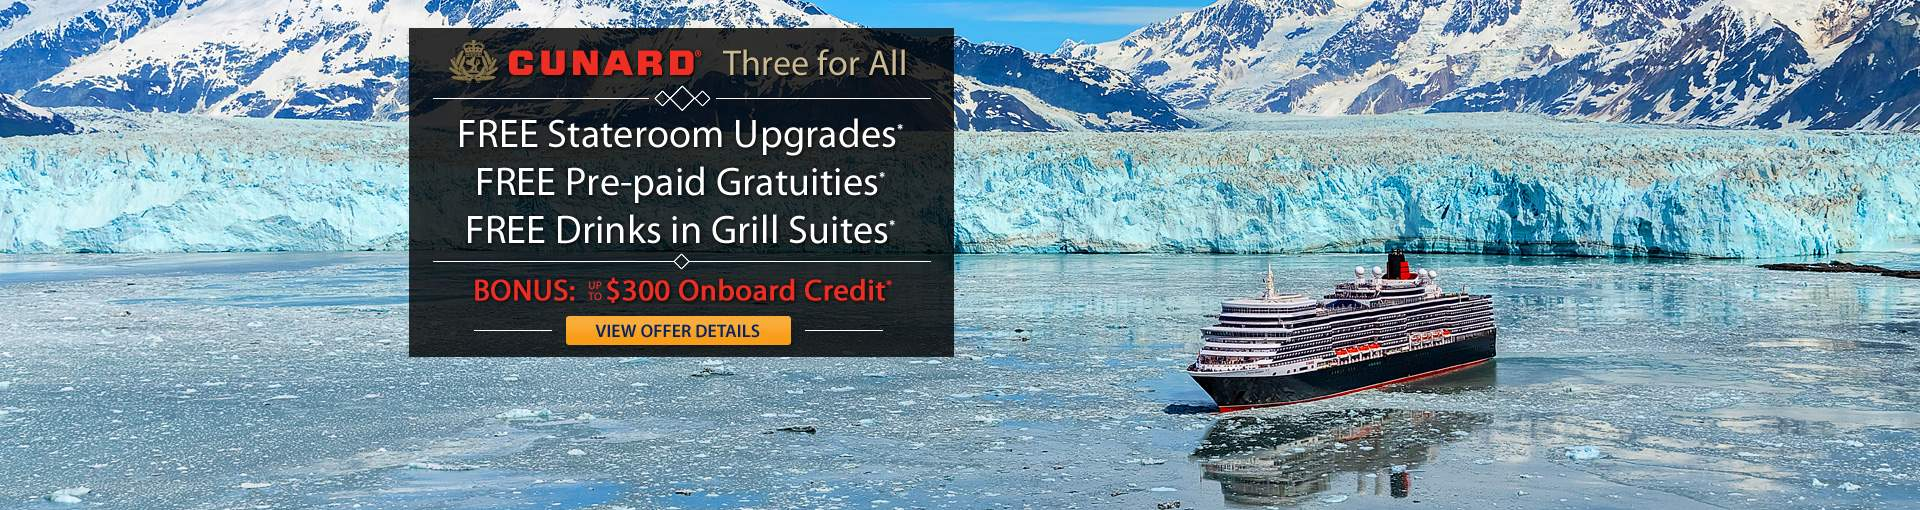 Cunard Line 3 for All Cruise Sale